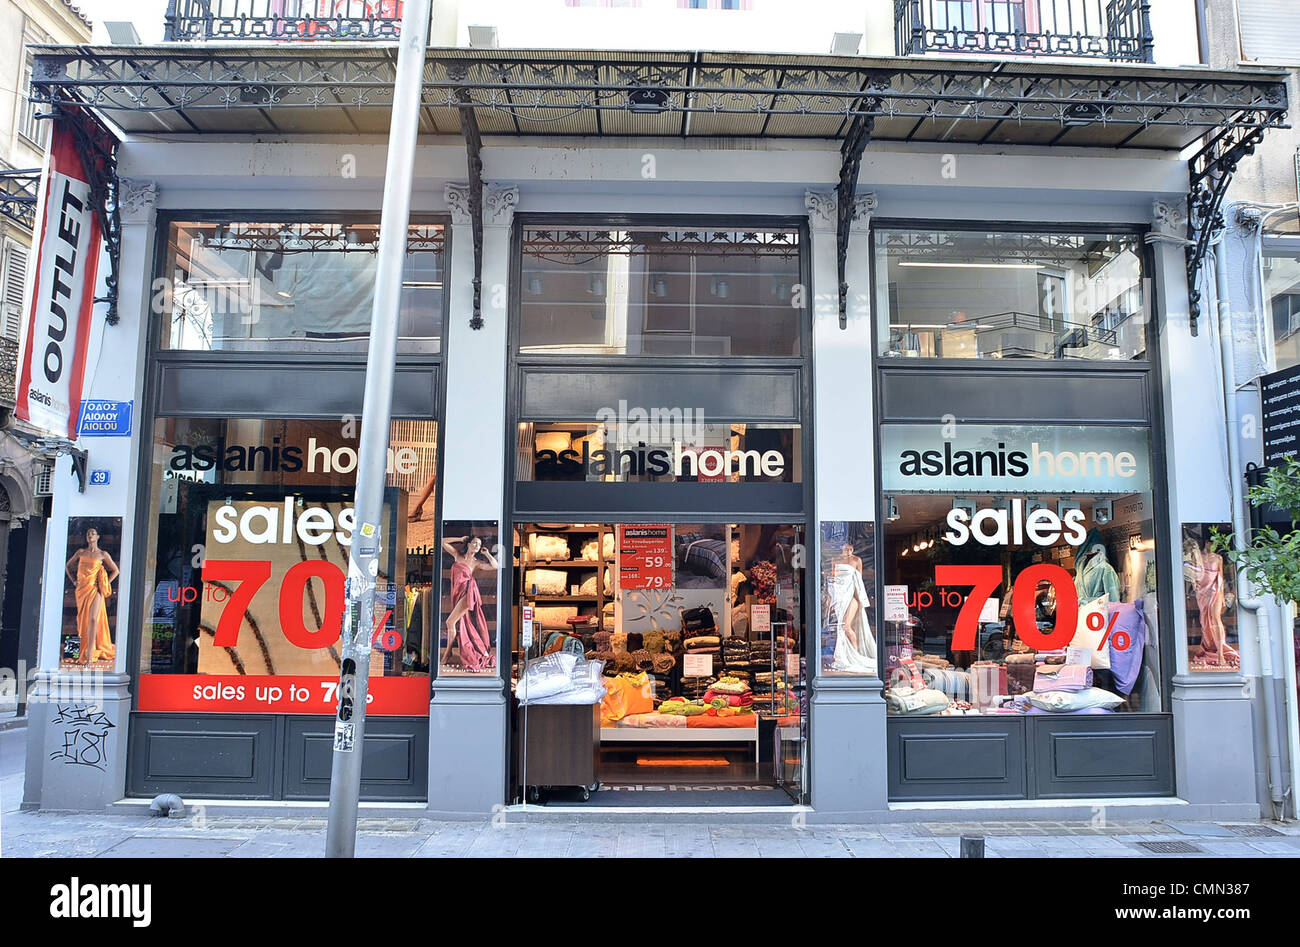 e4ab86560a Shopping Abroad Stock Photos   Shopping Abroad Stock Images - Alamy